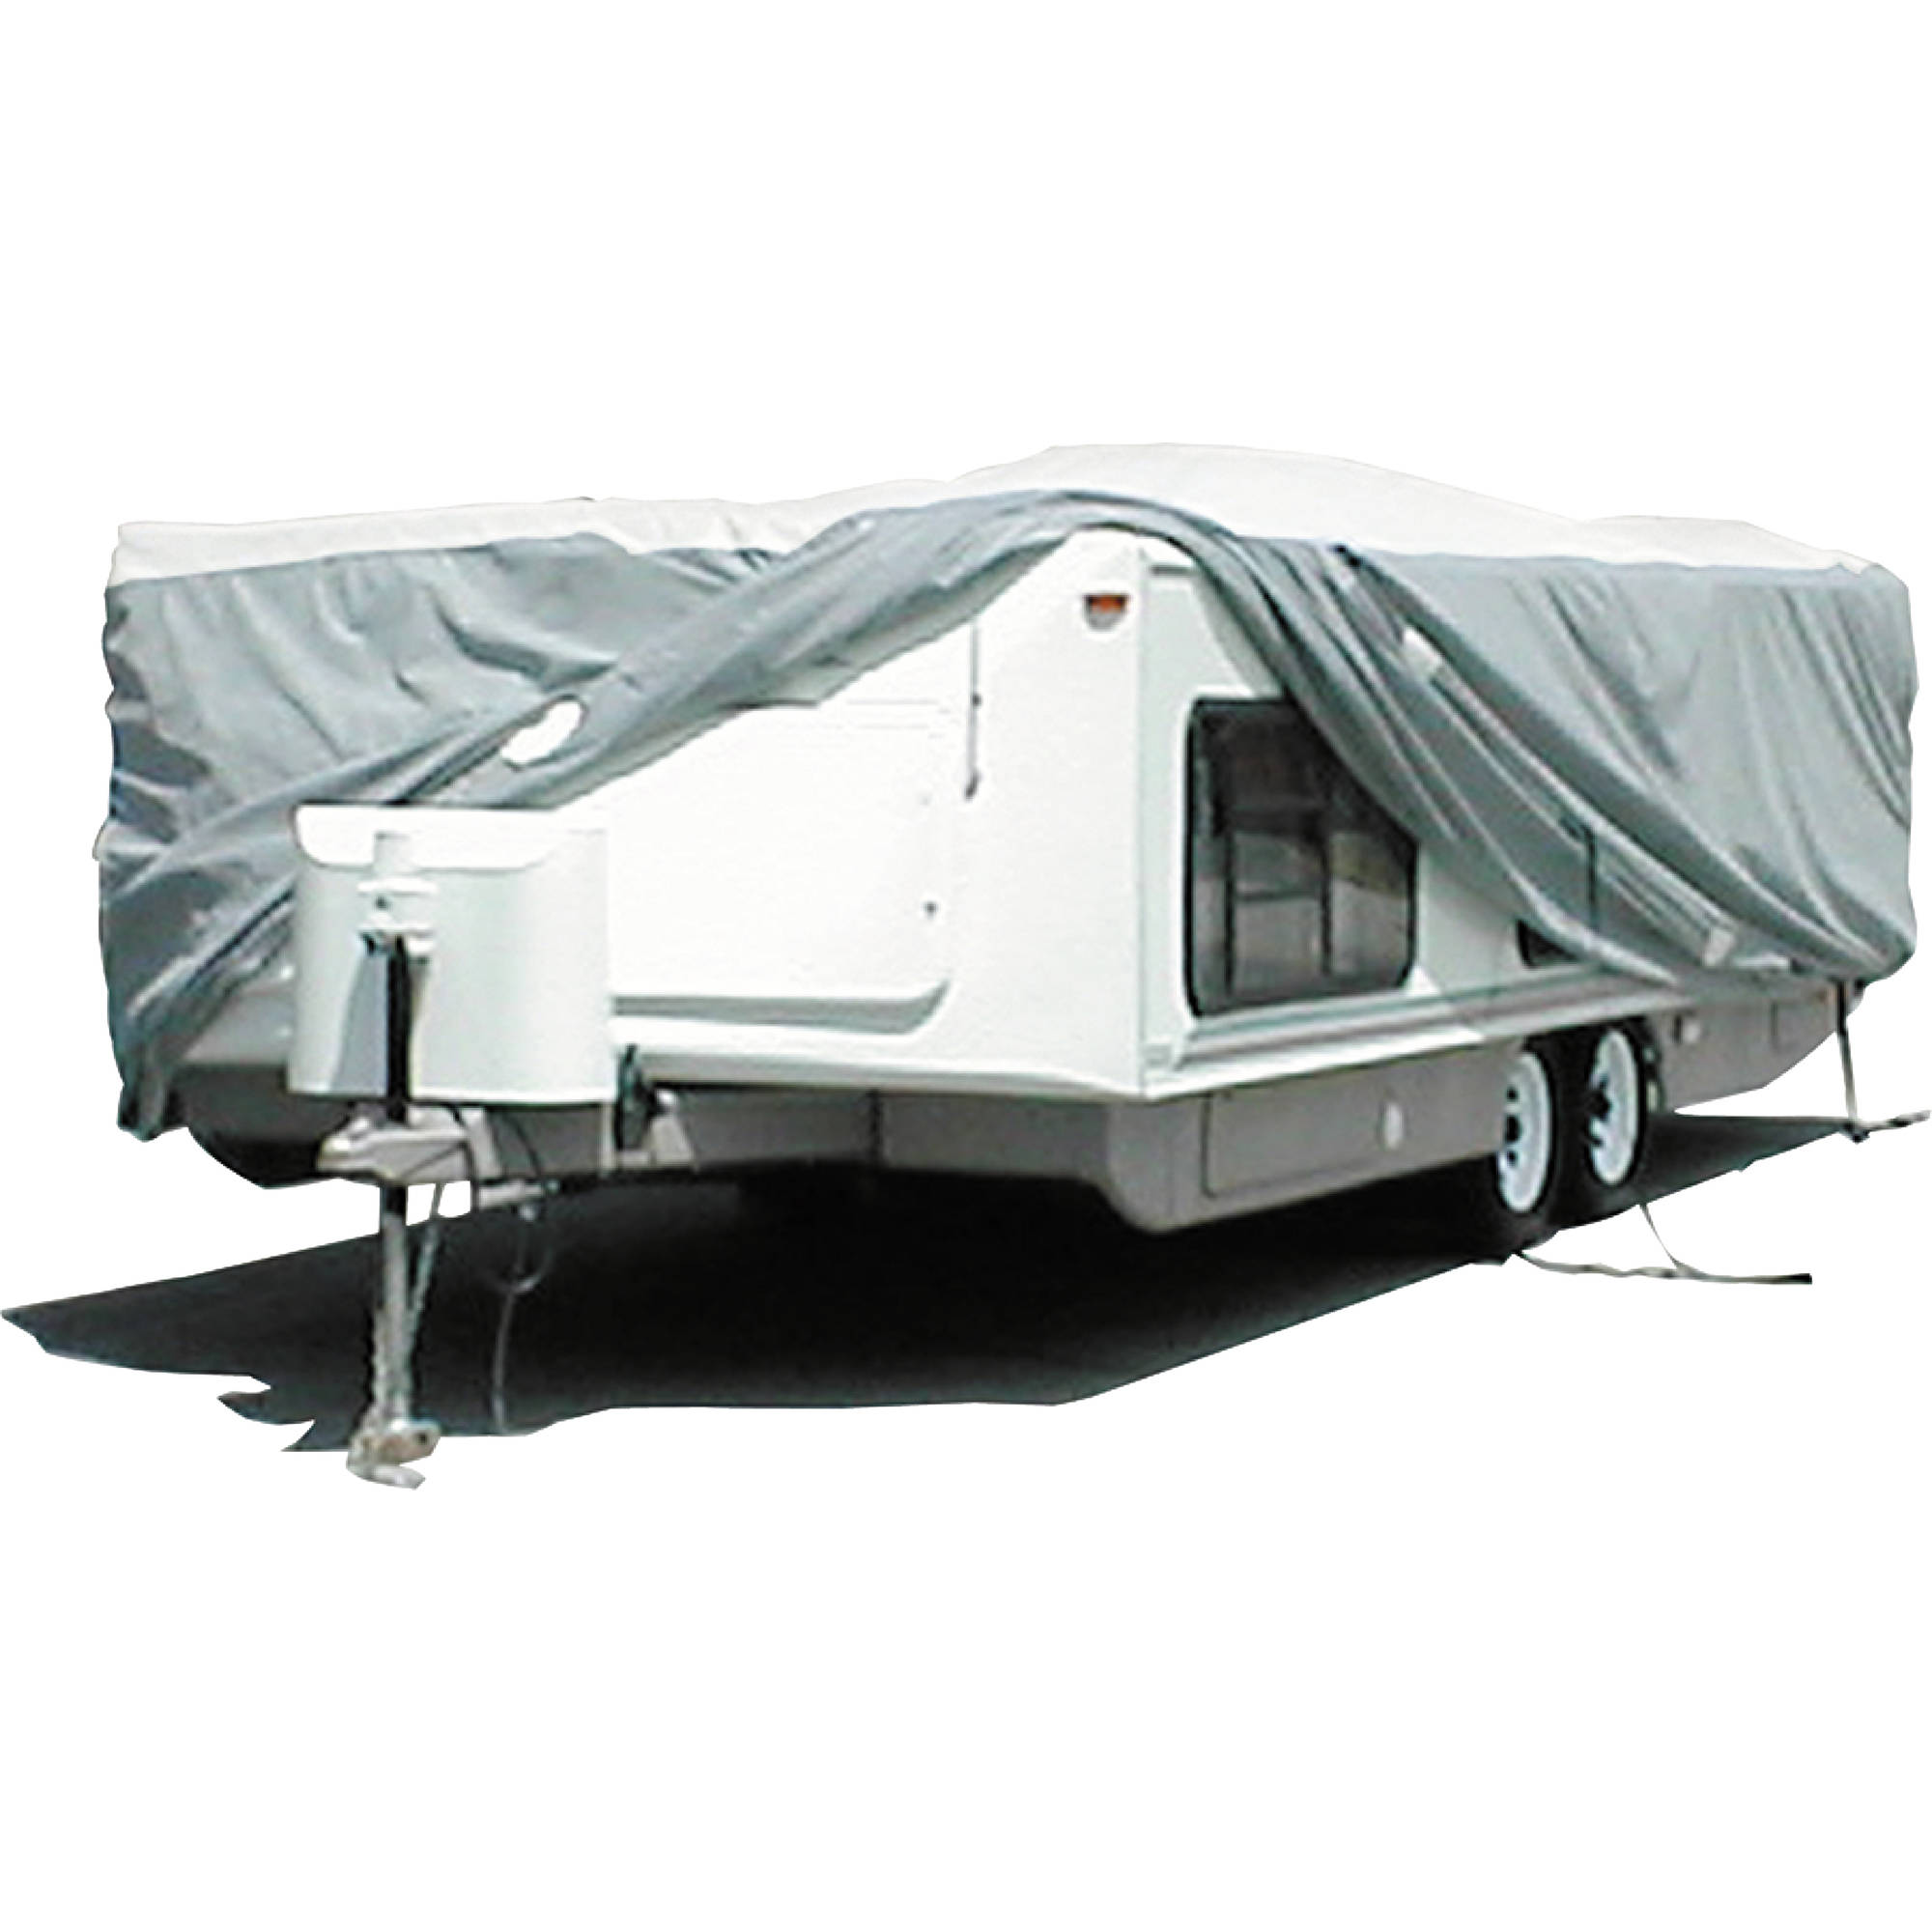 ADCO Hi-Lo Tyvek RV Cover, White Top/Gray Polypropylene Sides